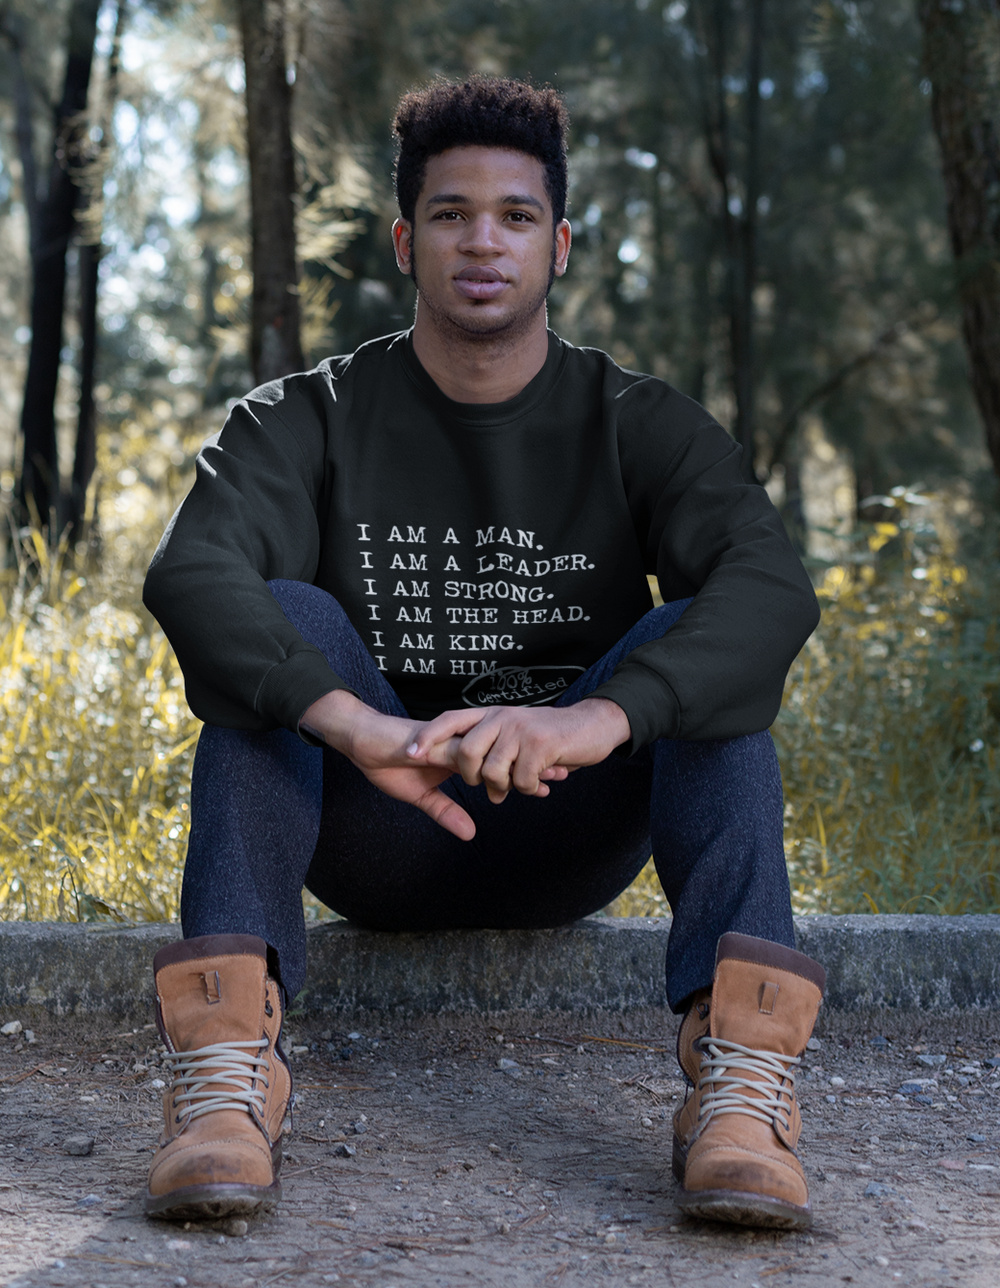 I AM A MAN Casual Mens Crewneck Sweatshirt - I AM HER Apparel, LLC